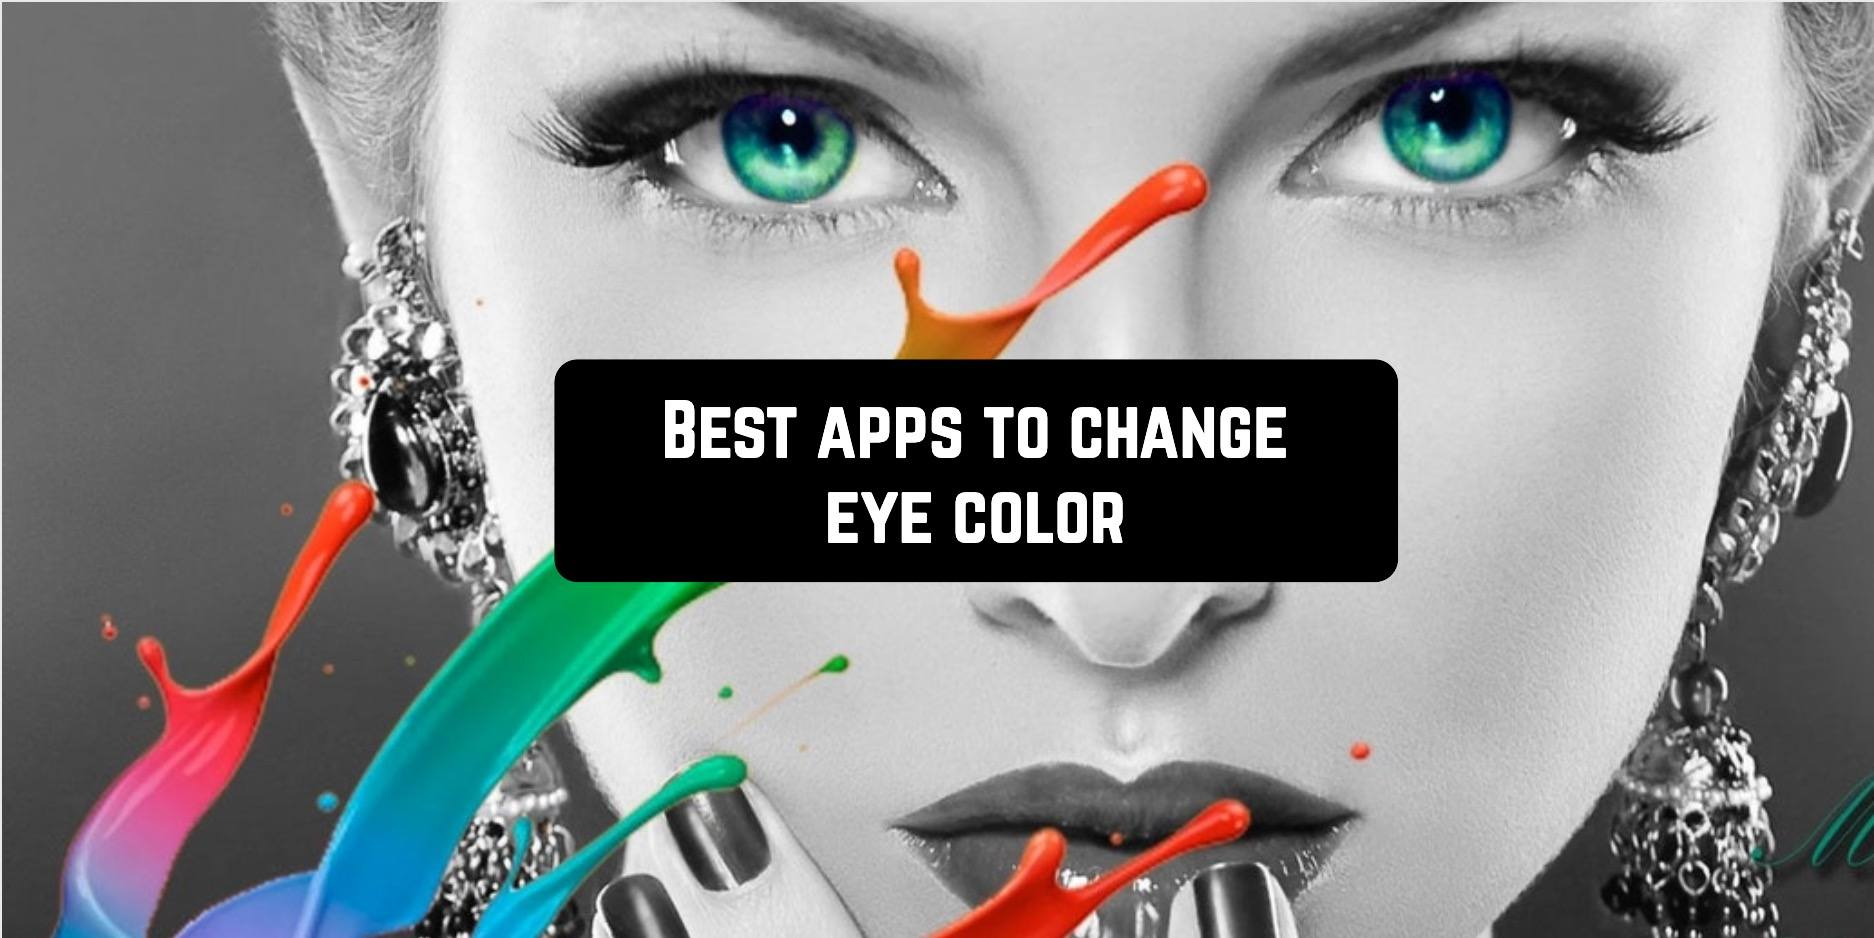 Best apps to change eye color